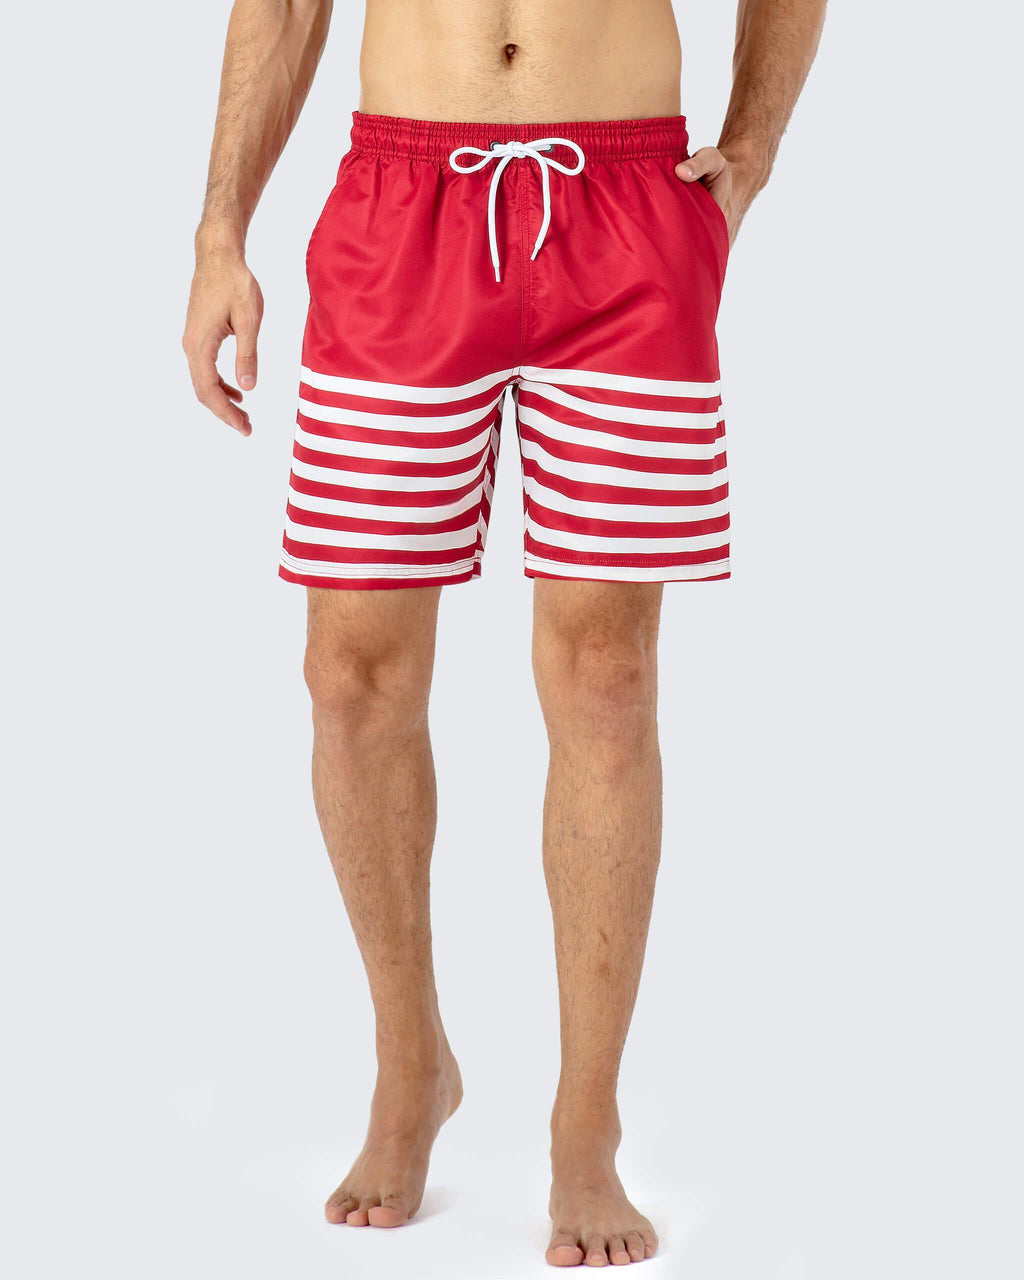 UPF 50+ Swim Trunk Short-Naviskin